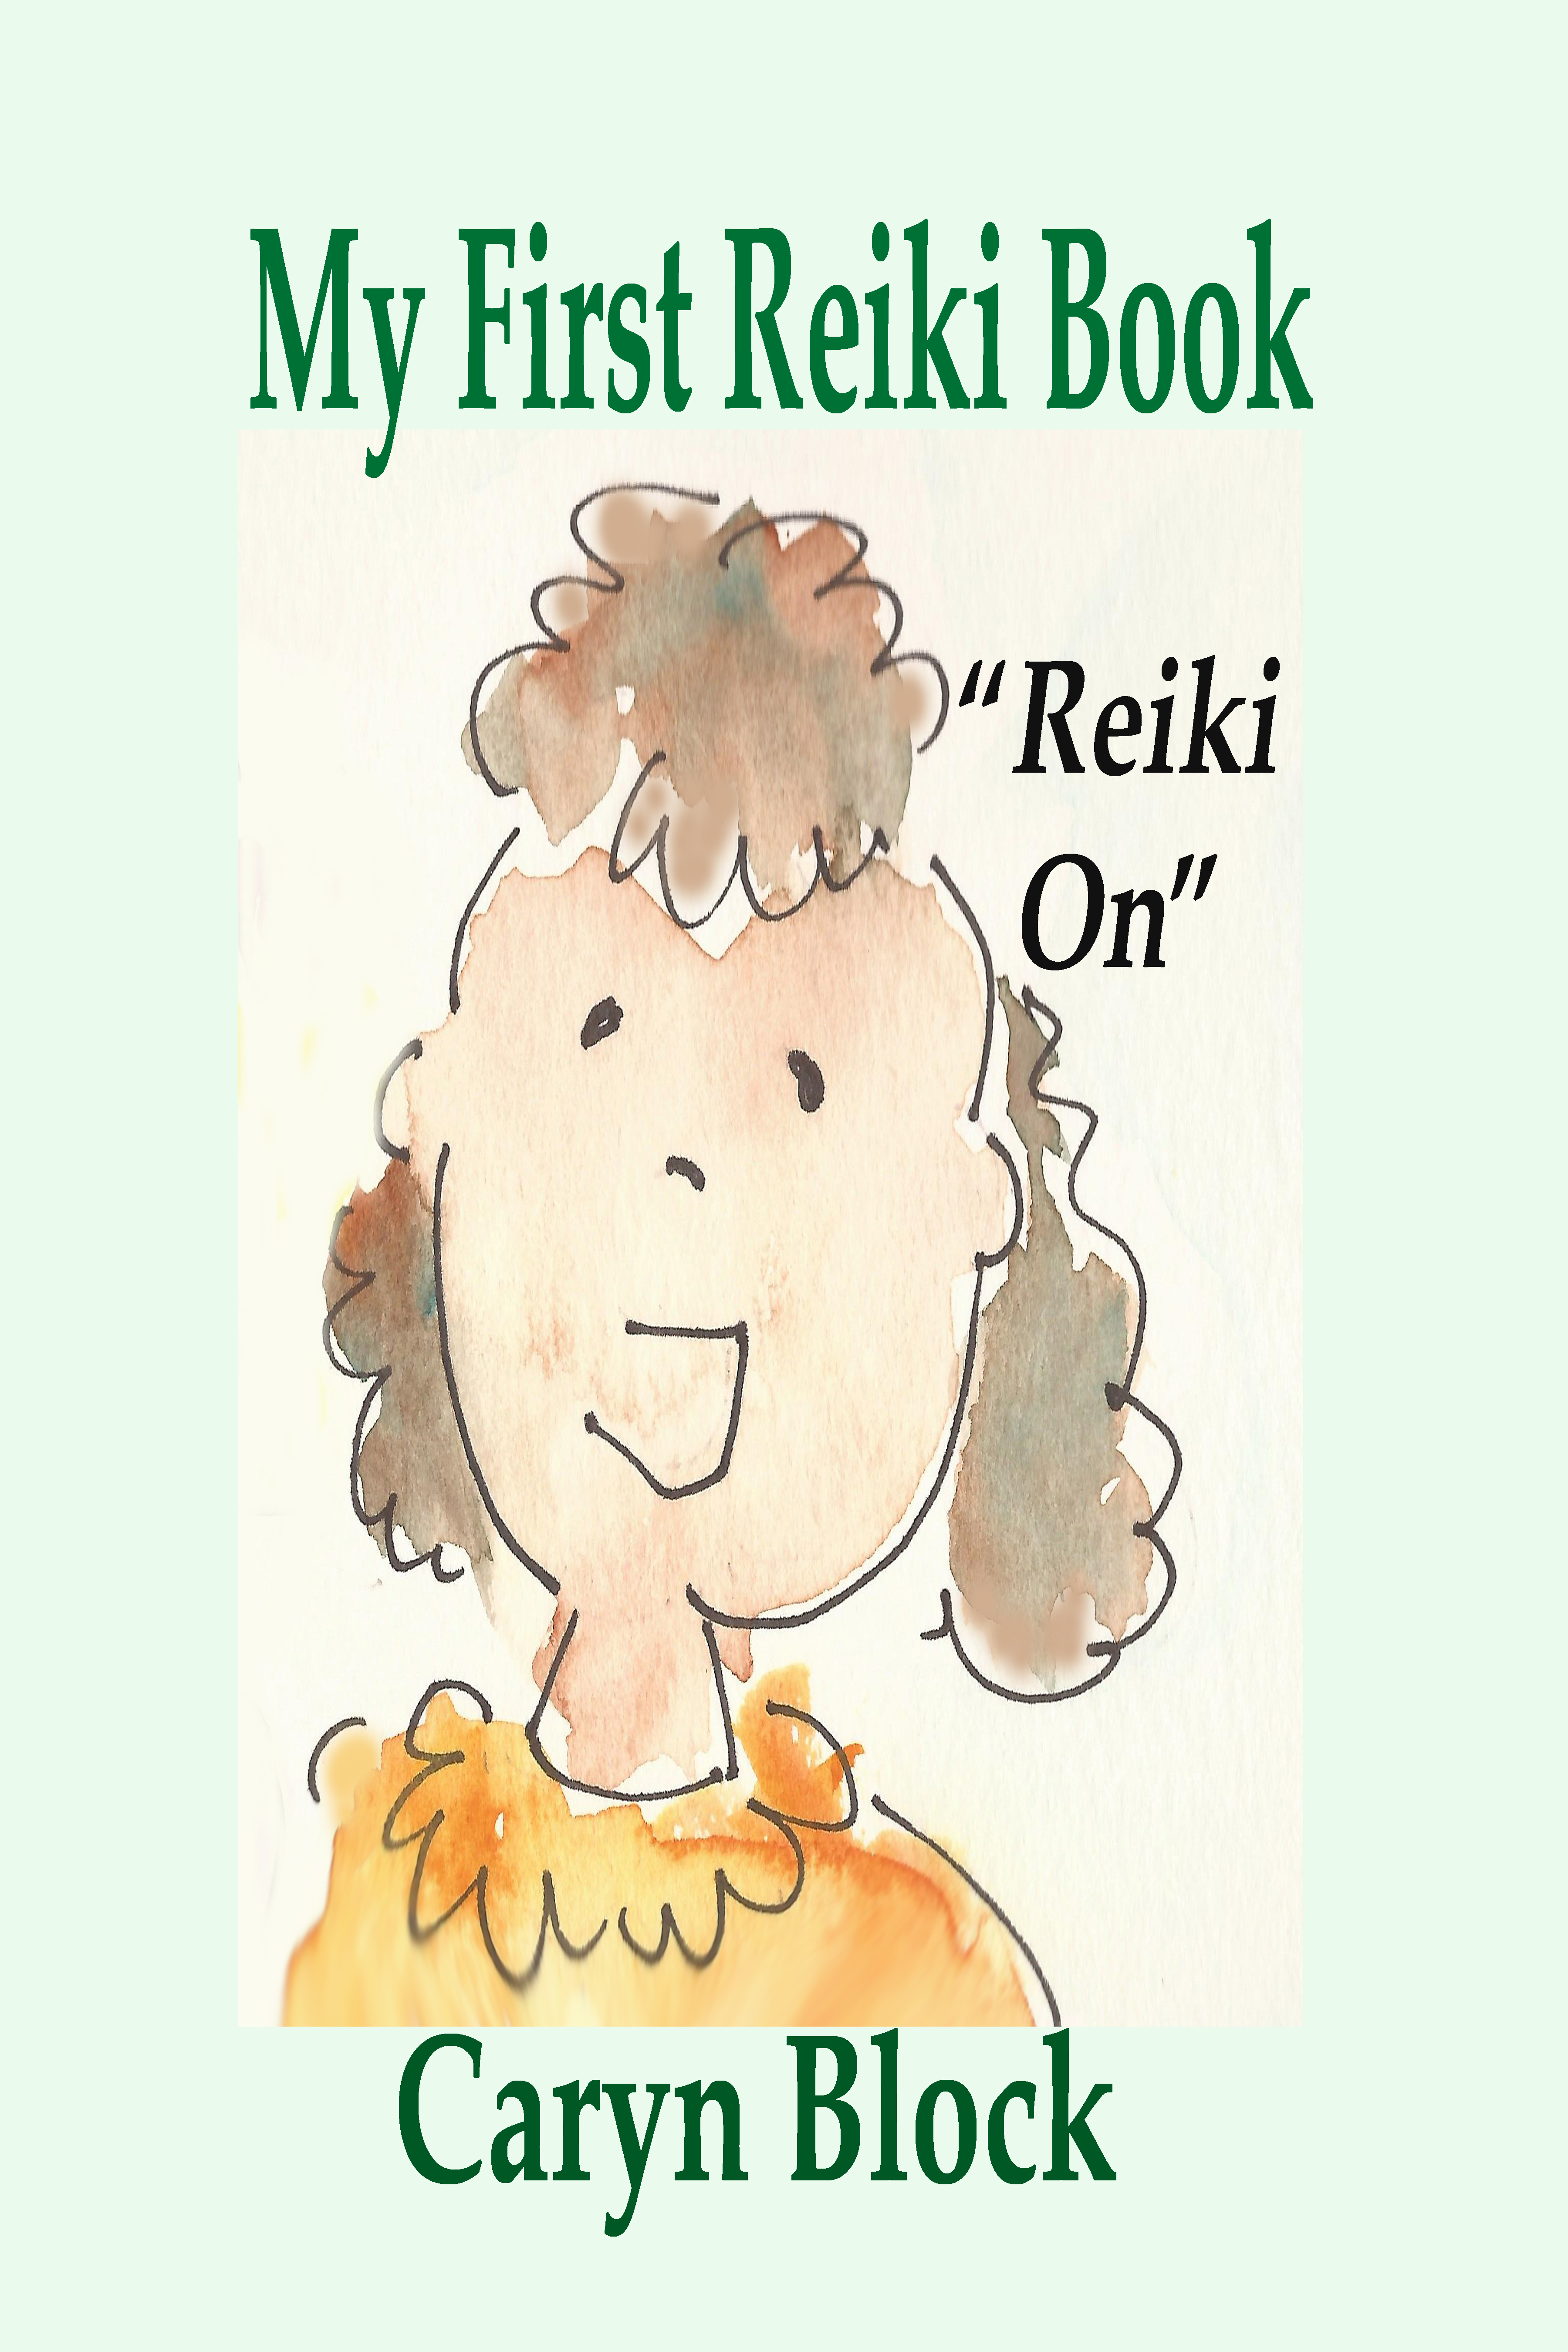 My First Reiki Book